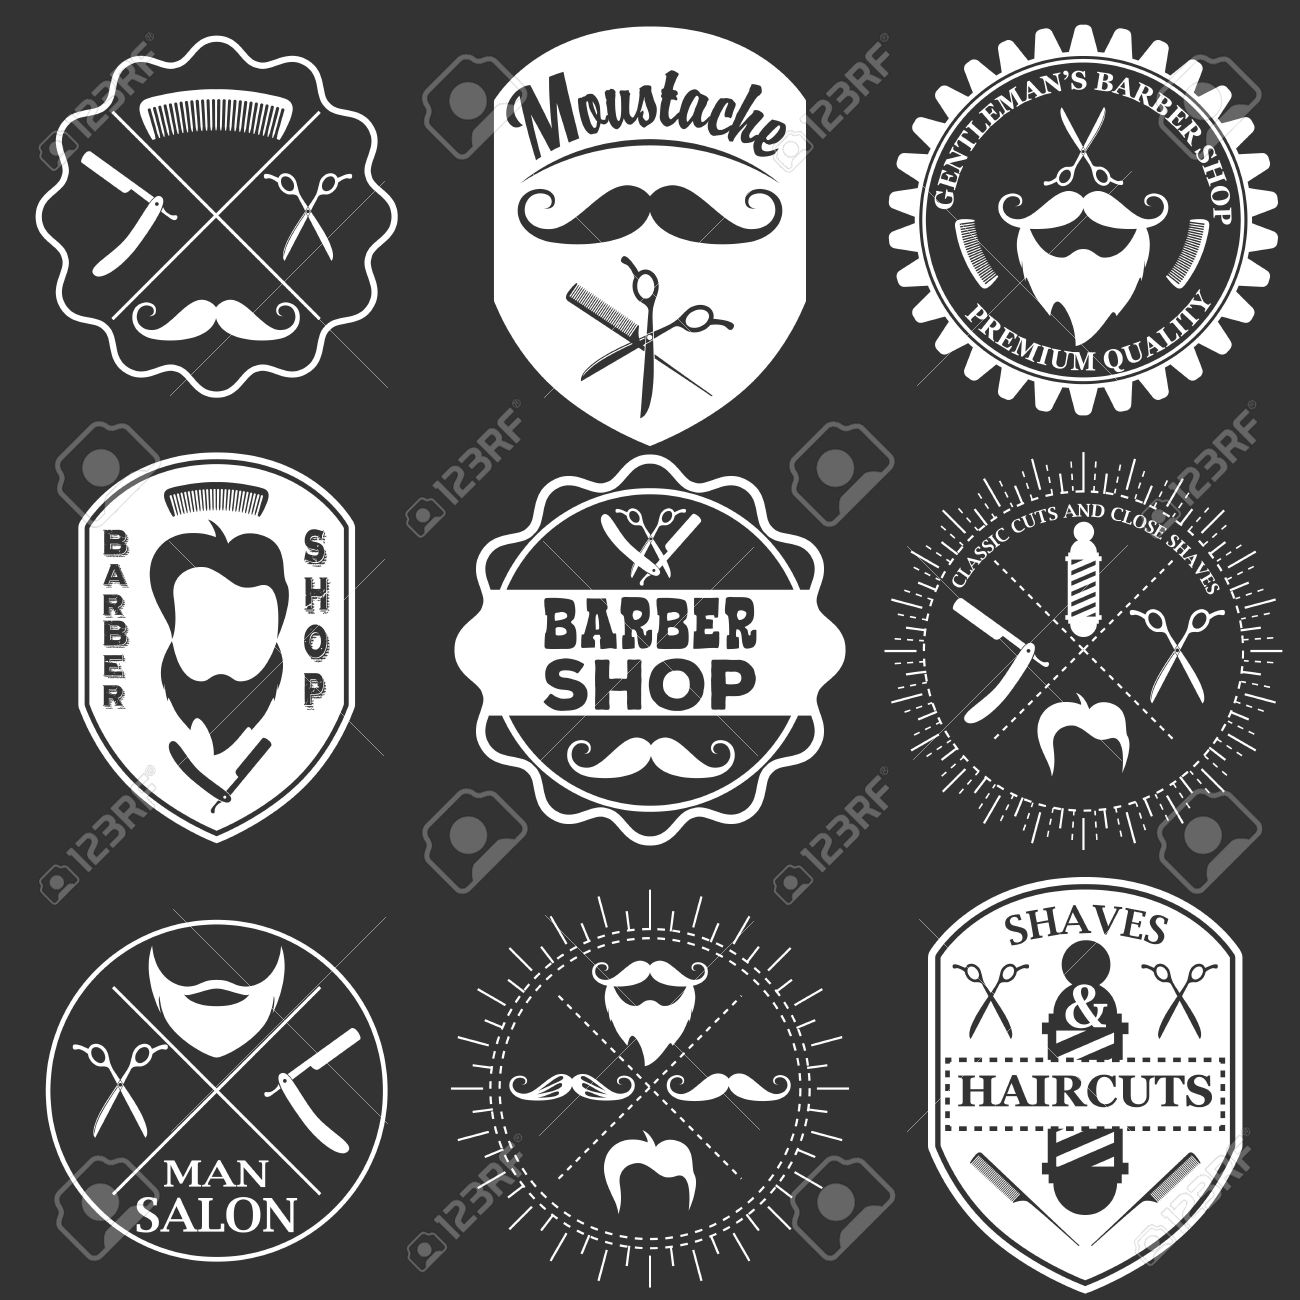 Clip art vector of vintage barber shop logo graphics and icon vector - Vector Similar Images Add To Likebox Barber Shop Pole Set Of Vintage Barber Shop Logo Templates Labels And Badges Made